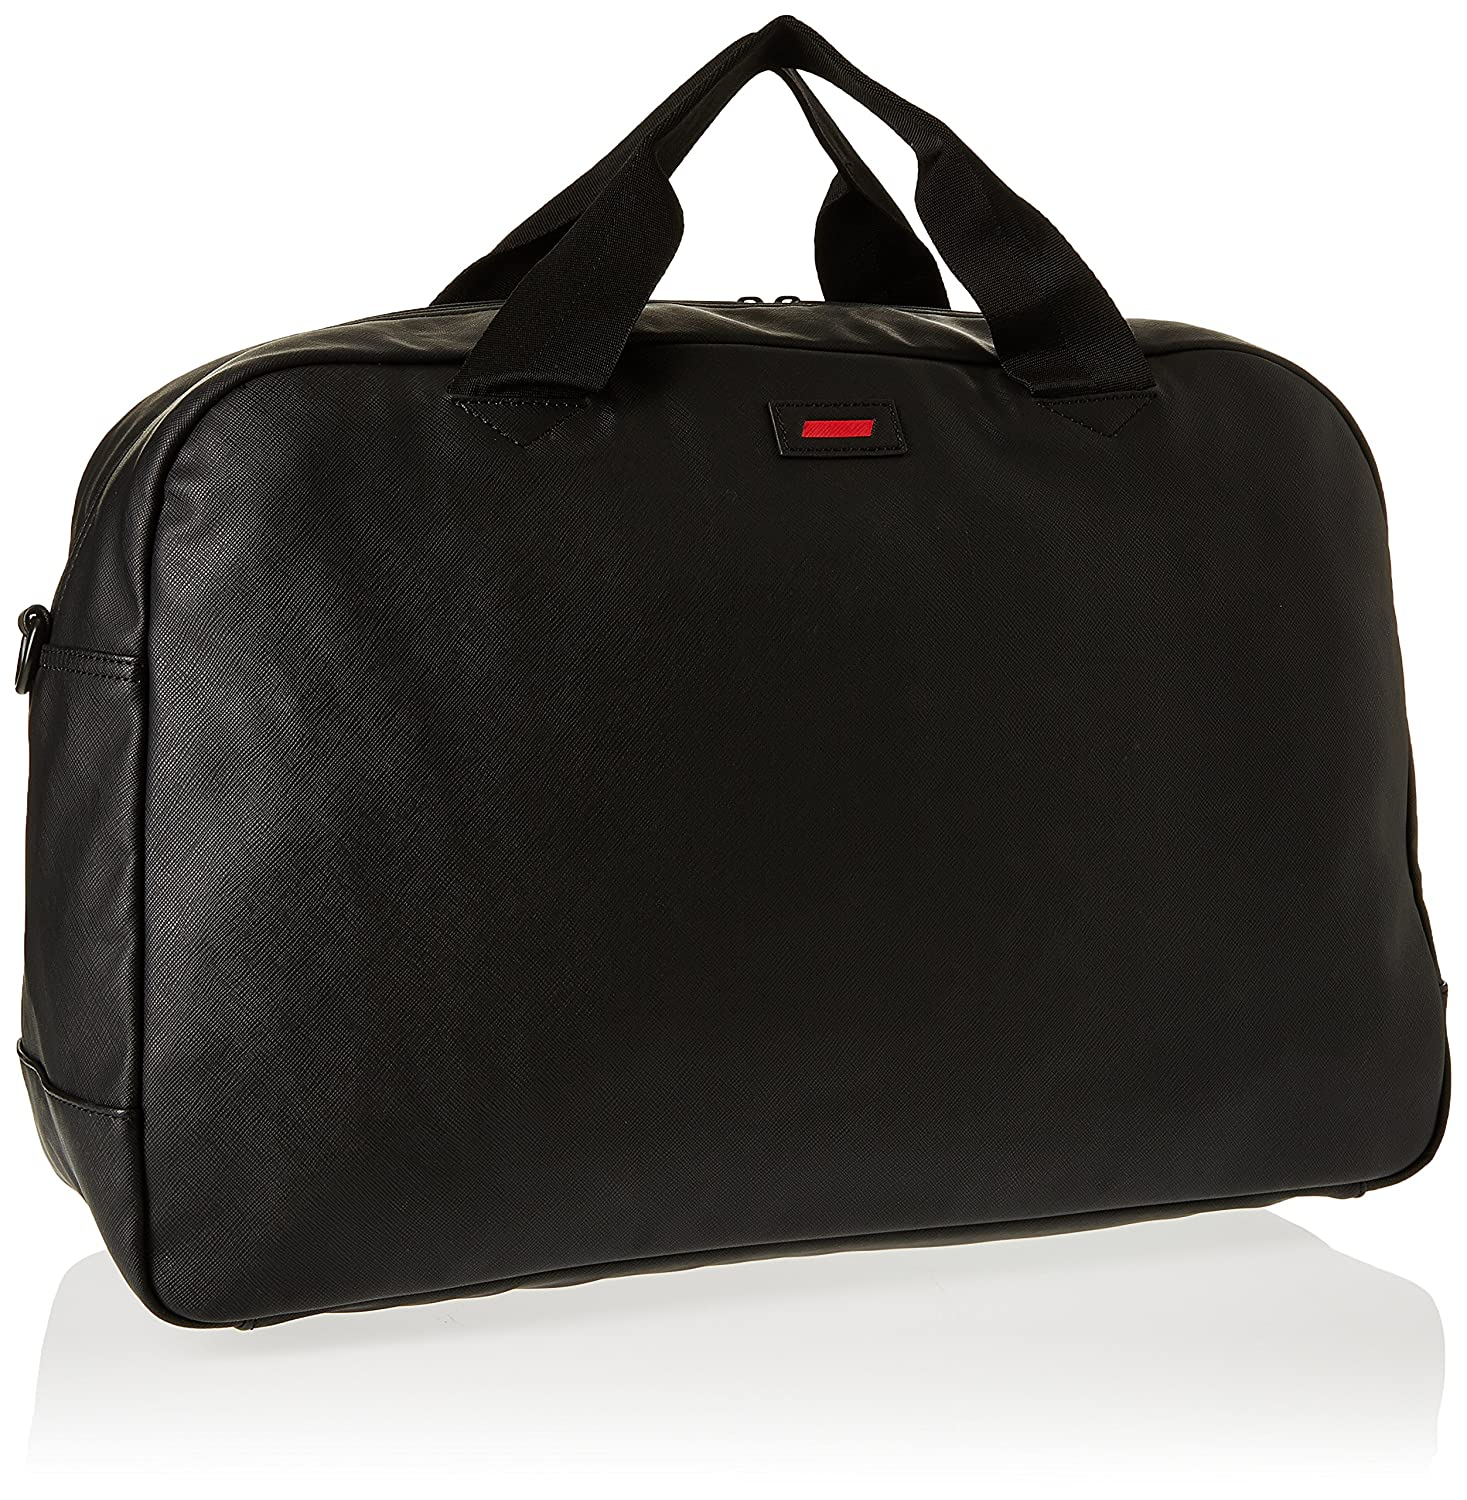 e2898f2790 Puma Men s Ferrari Ls 074211 Top-Handle Bag Black black (Black) One Size   Amazon.co.uk  Shoes   Bags